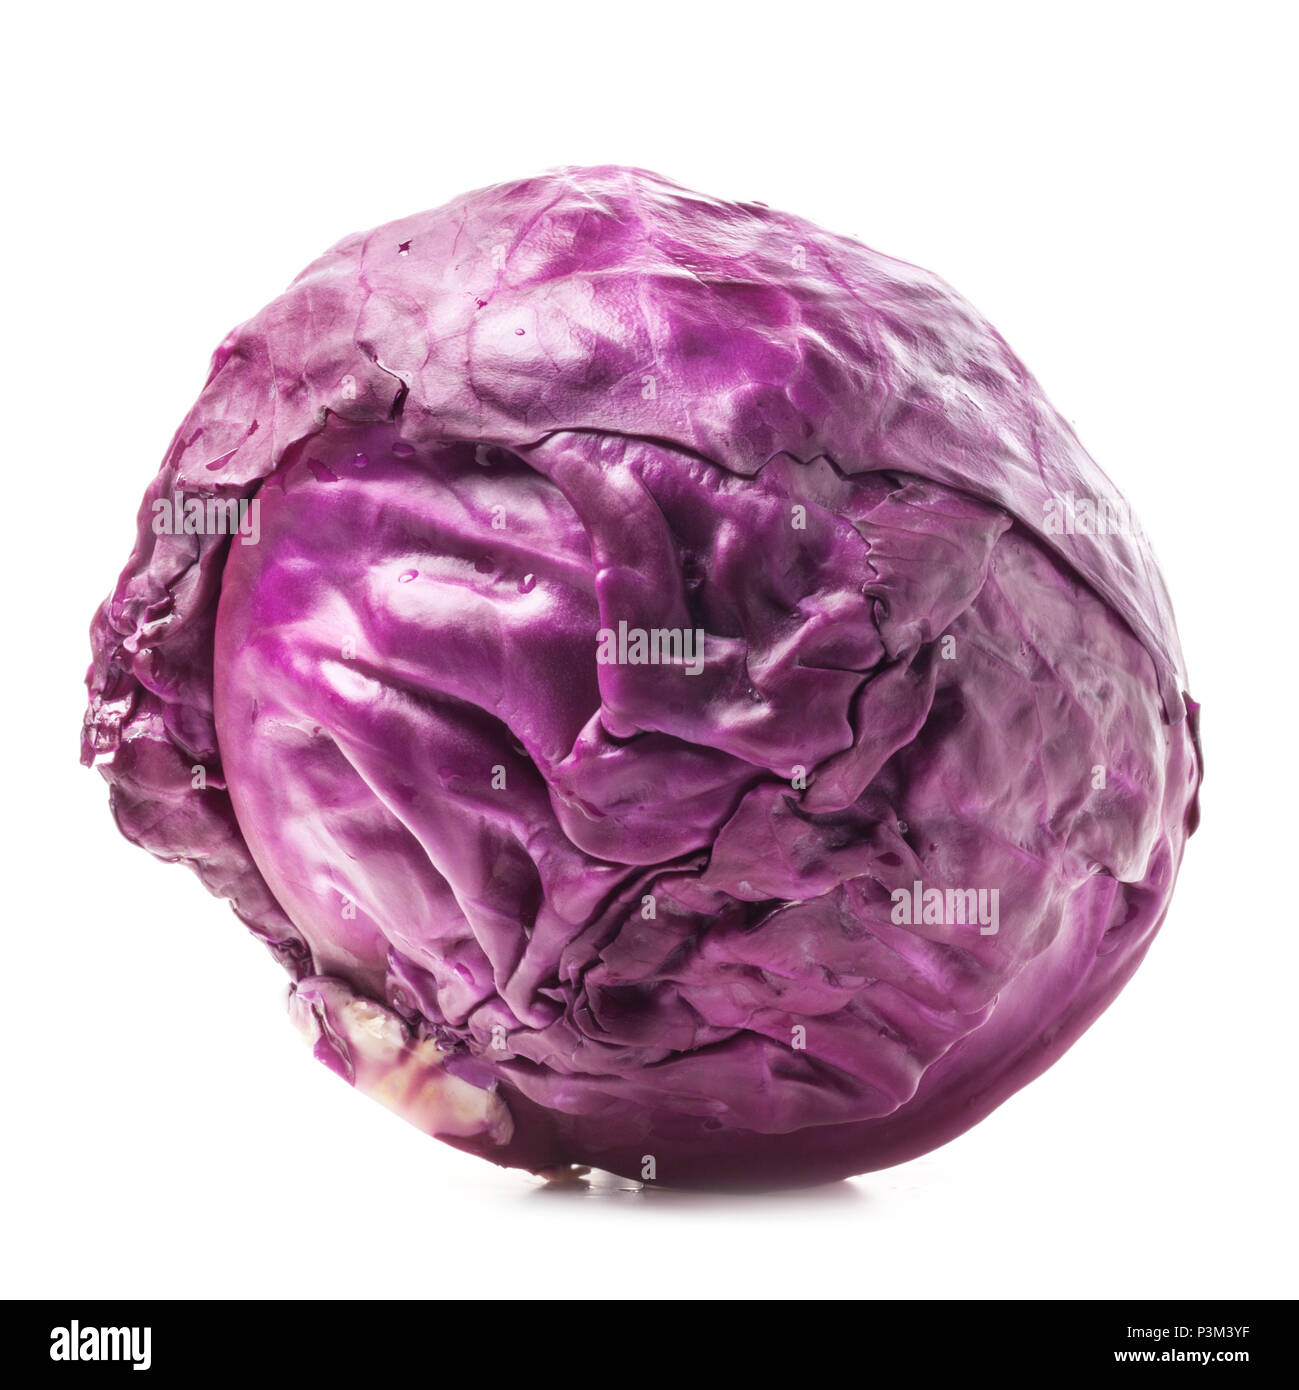 Fresh red cabbage isolated on white background Stock Photo